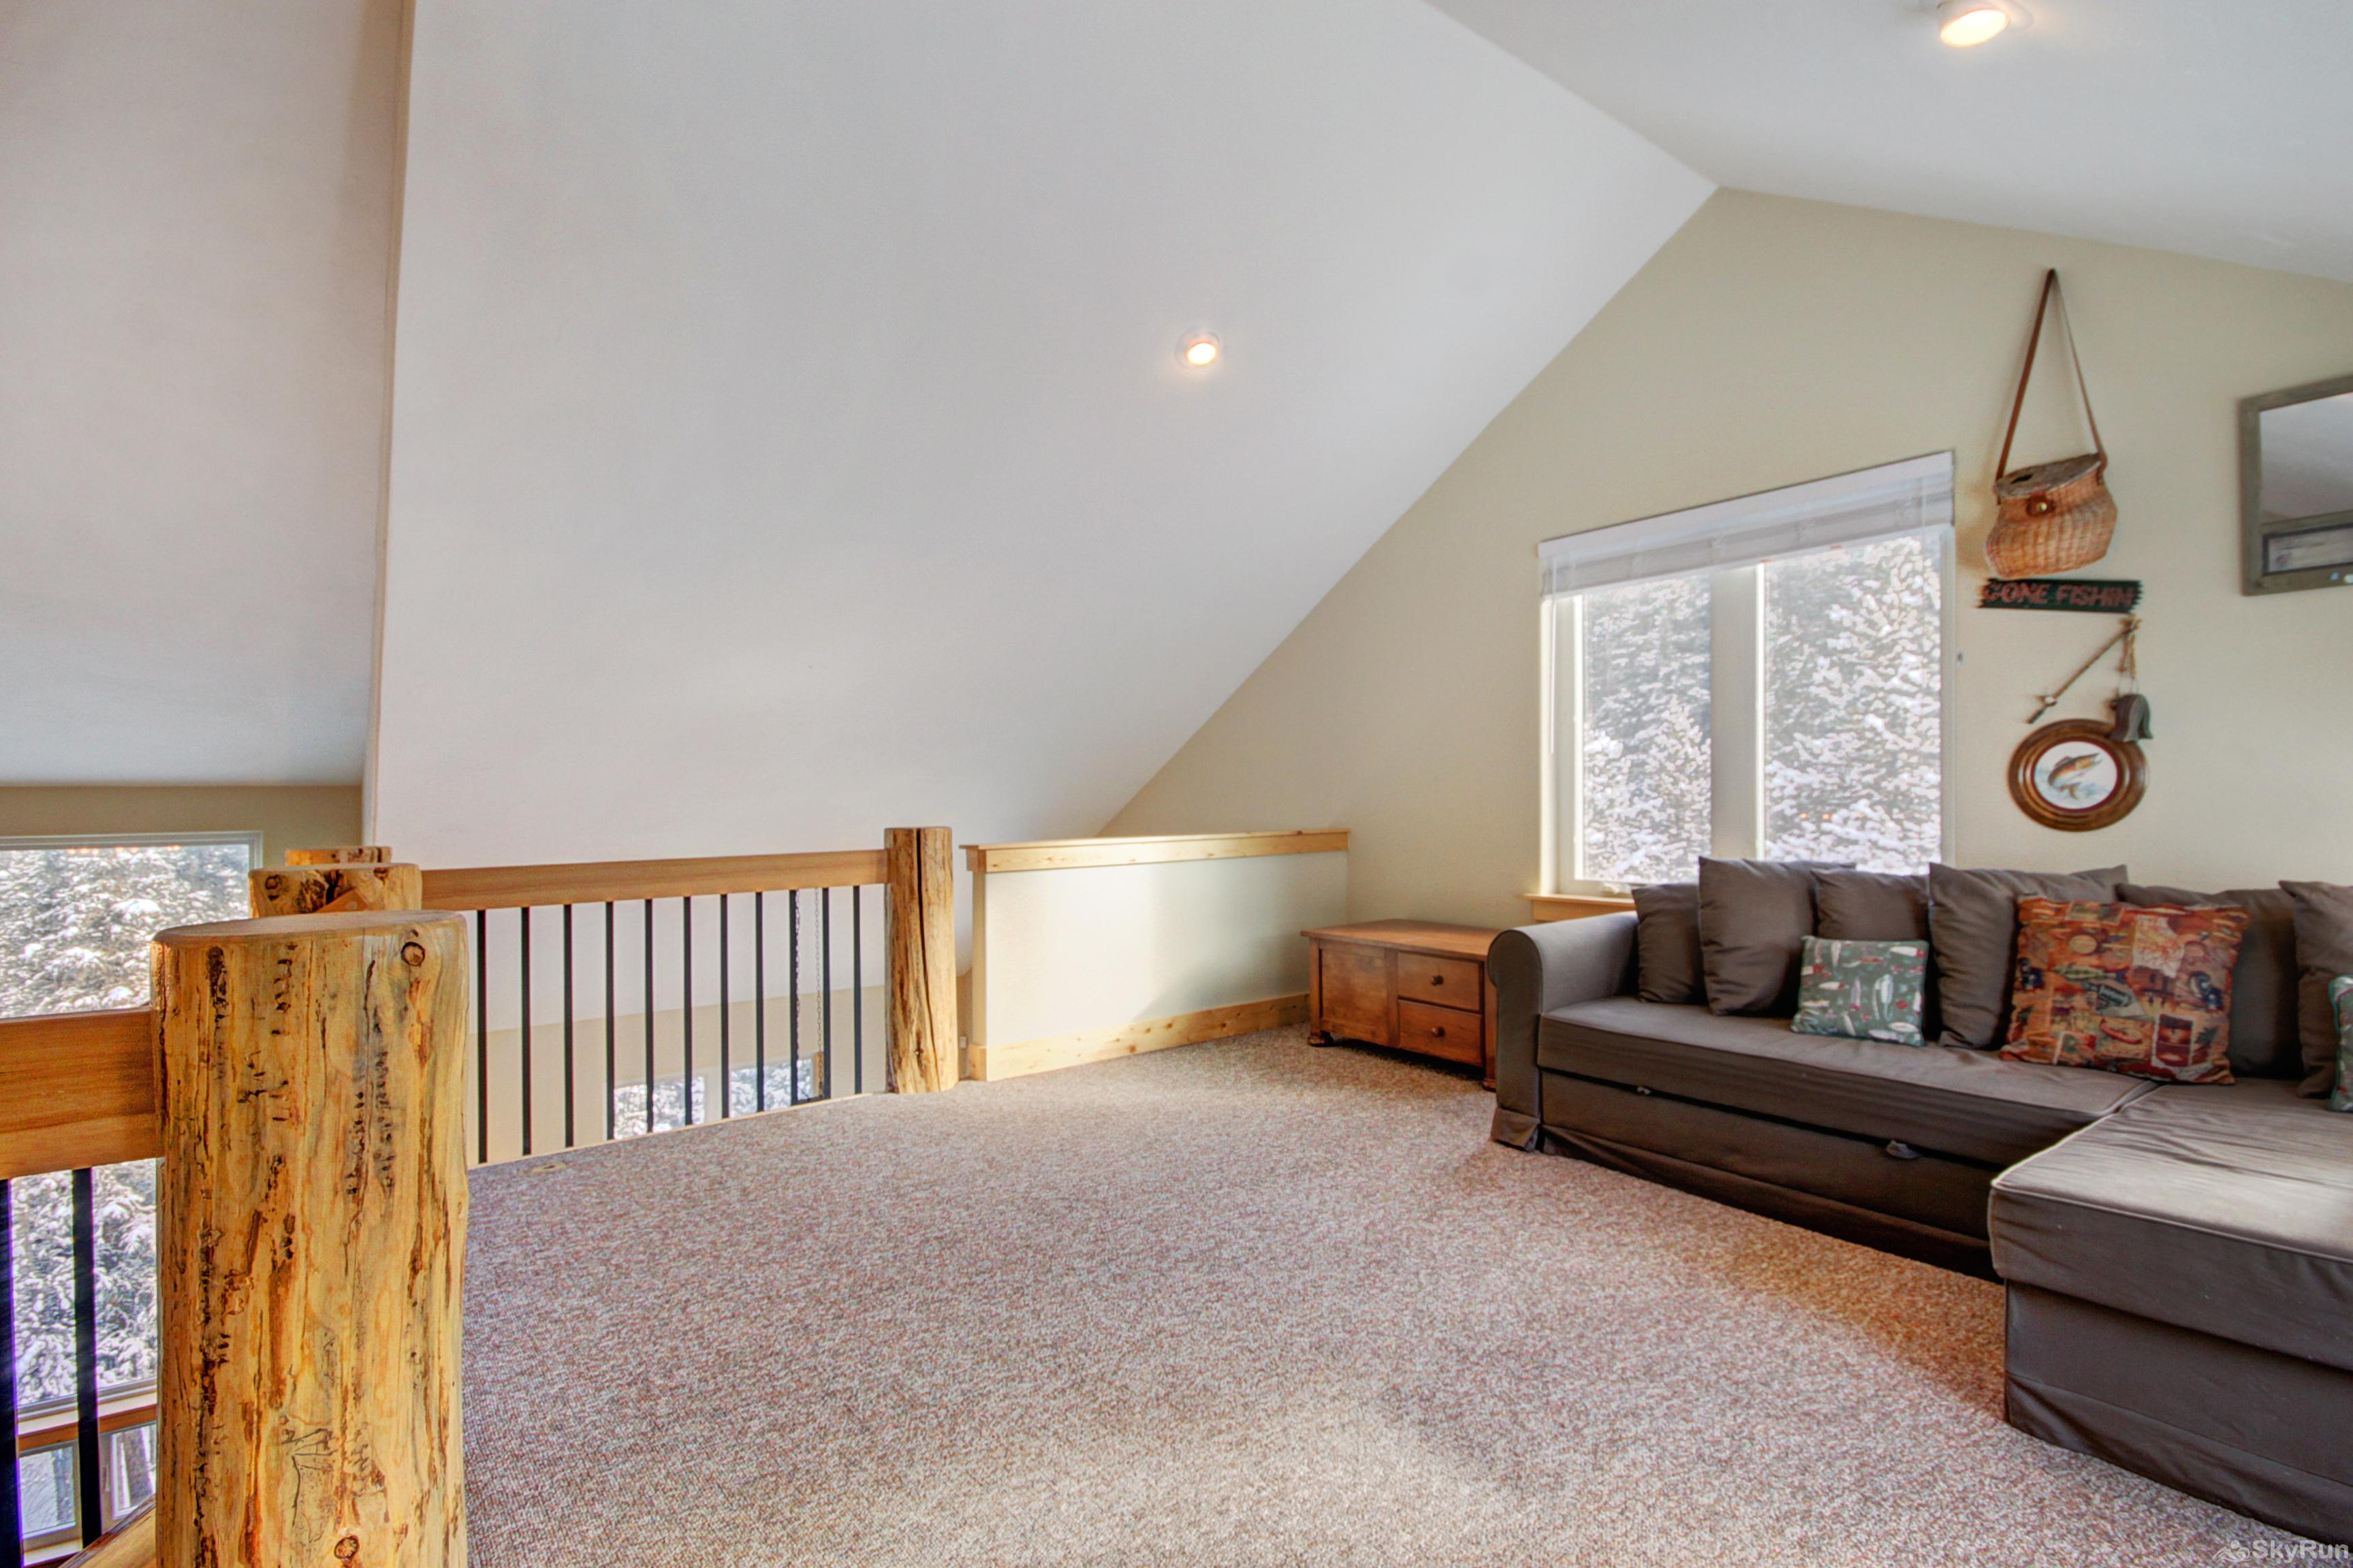 Twin Creek Lodge Full size sleeper sofa provides additional sleeping accommodations in upper level loft